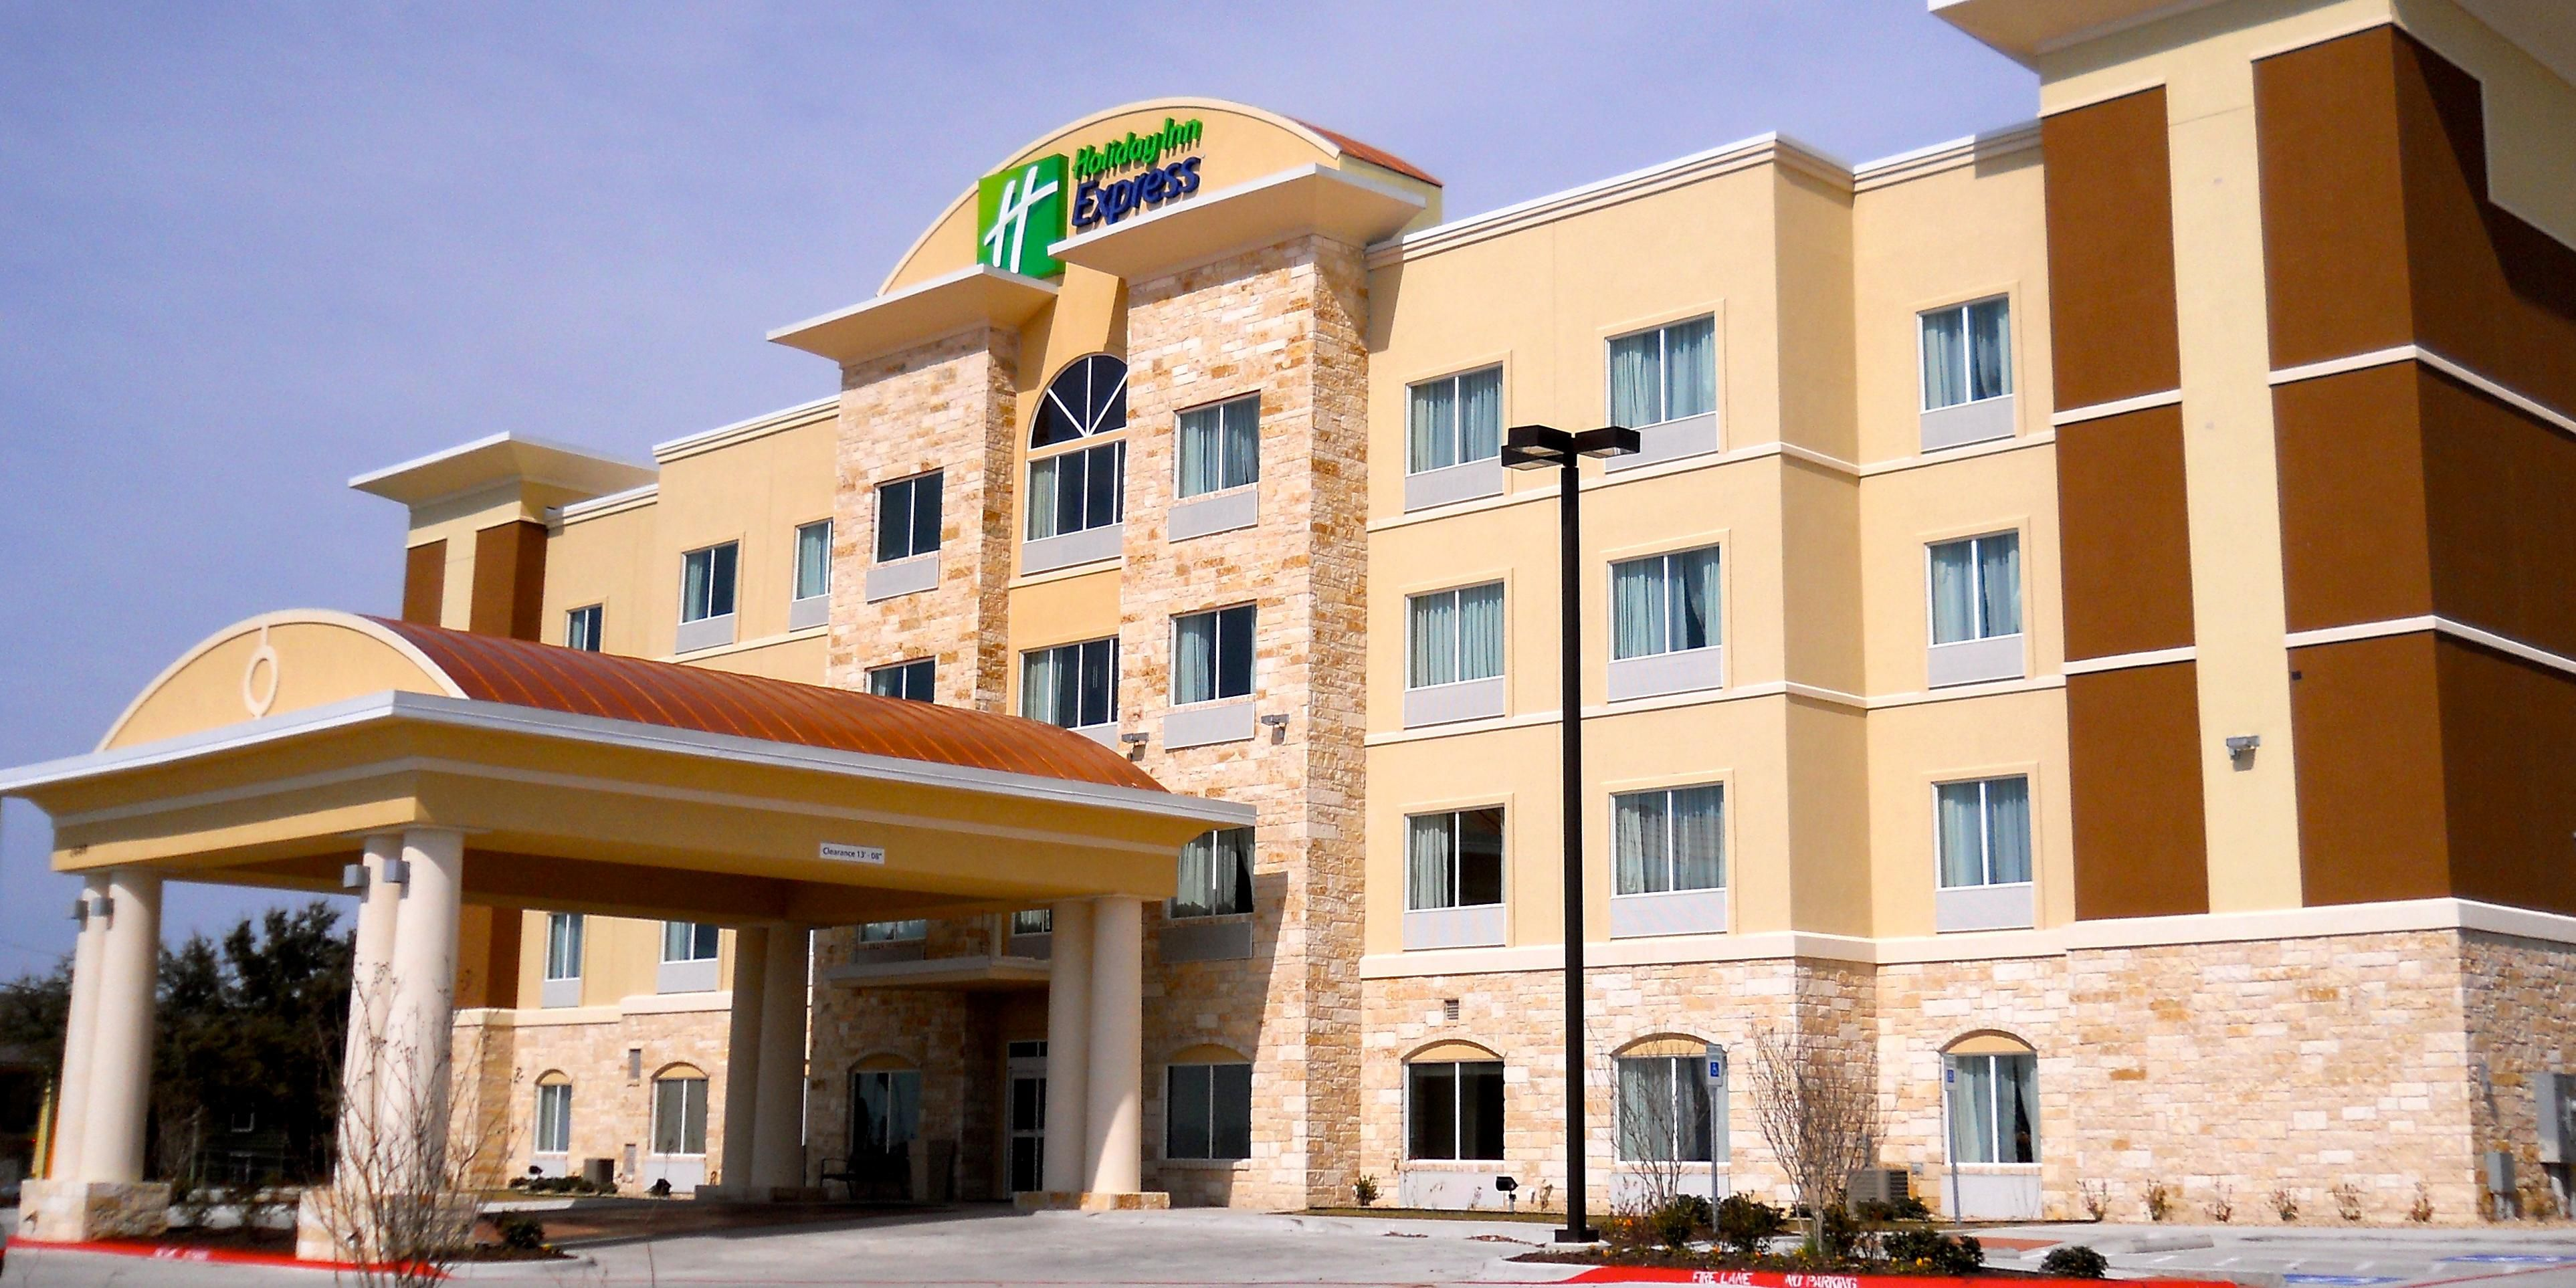 ... Hotel Exterior; Welcome To The Holiday Inn Express U0026amp; Suites Temple  Texas!